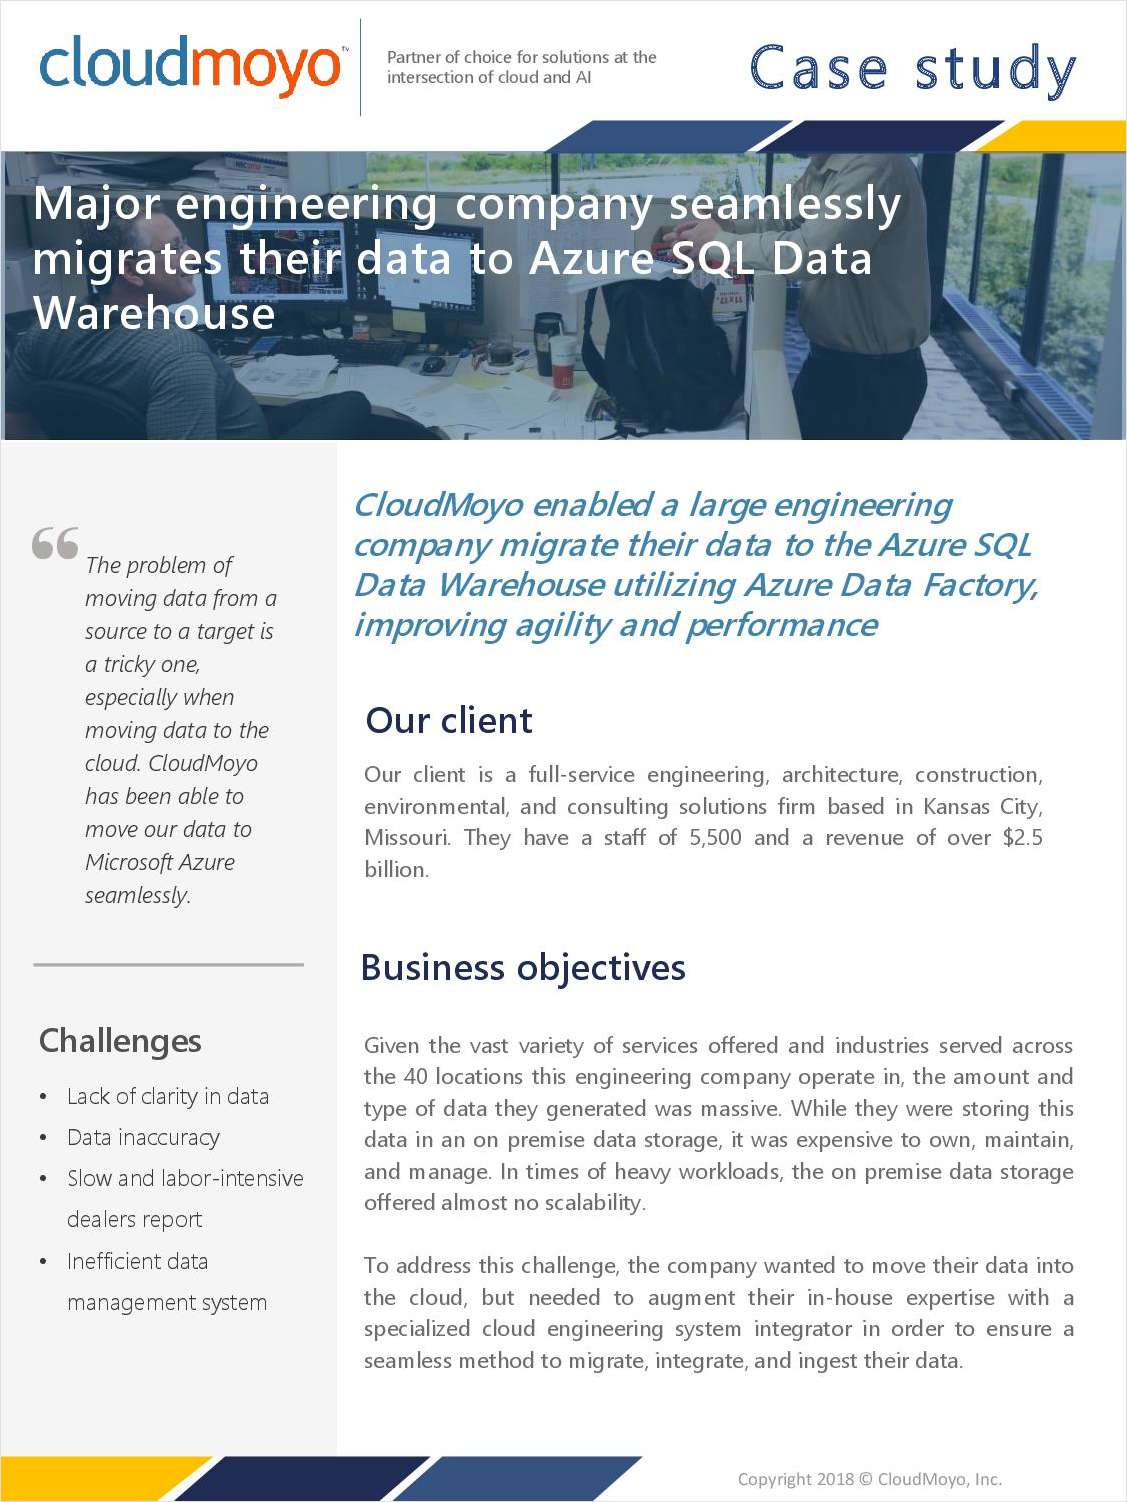 Major Engineering Company Seamlessly Migrates Their Data to Azure SQL Data Warehouse